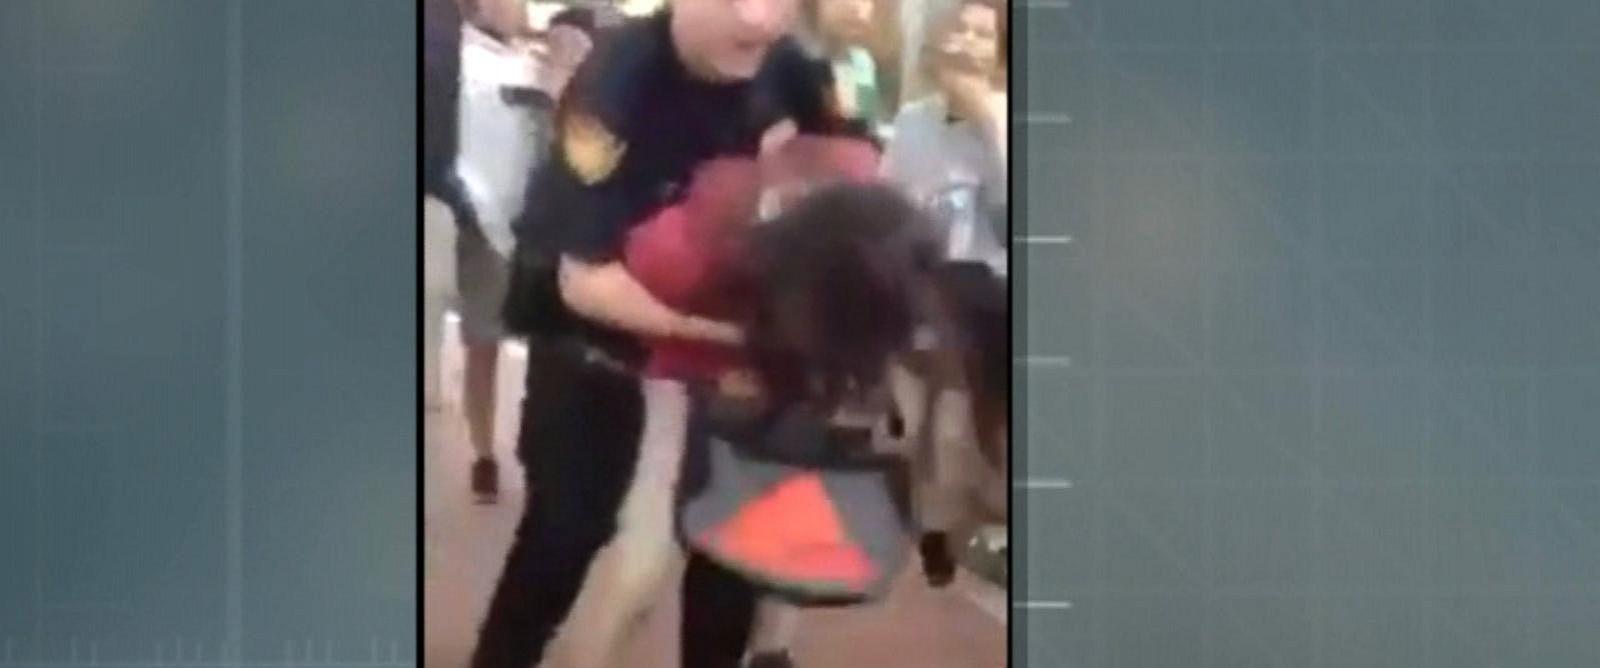 San Antonio Schools Fire Officer Accused of Excessive Force on Student